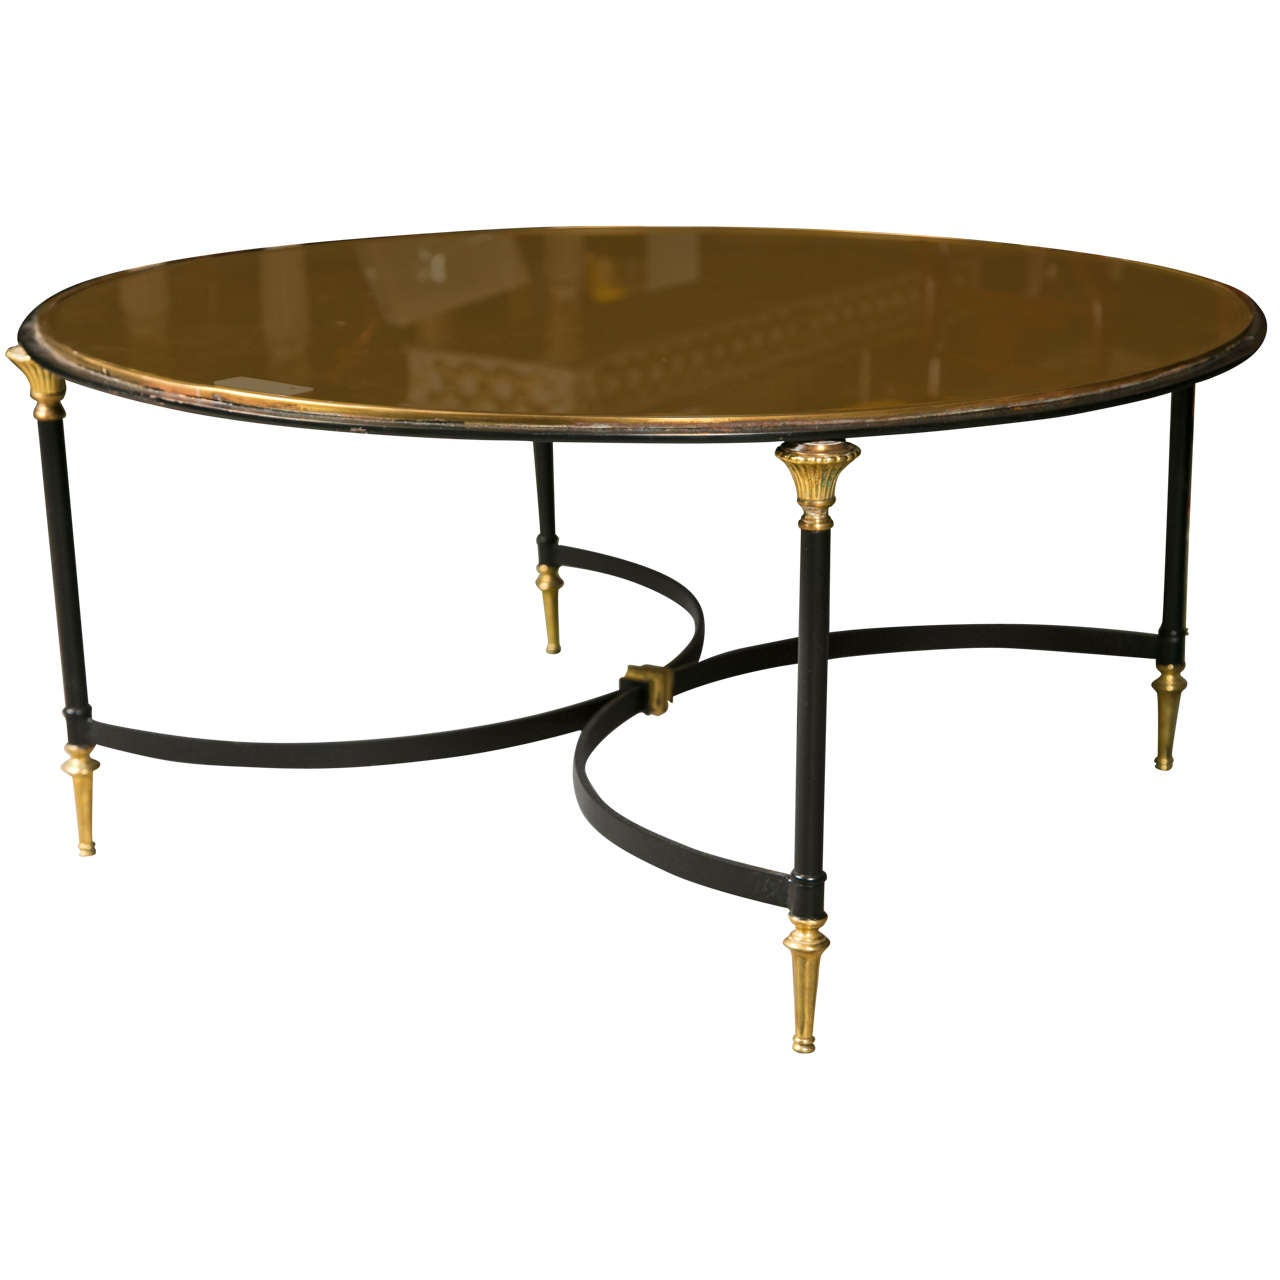 Hollywood regency style circular coffee table at 1stdibs Vogue coffee table